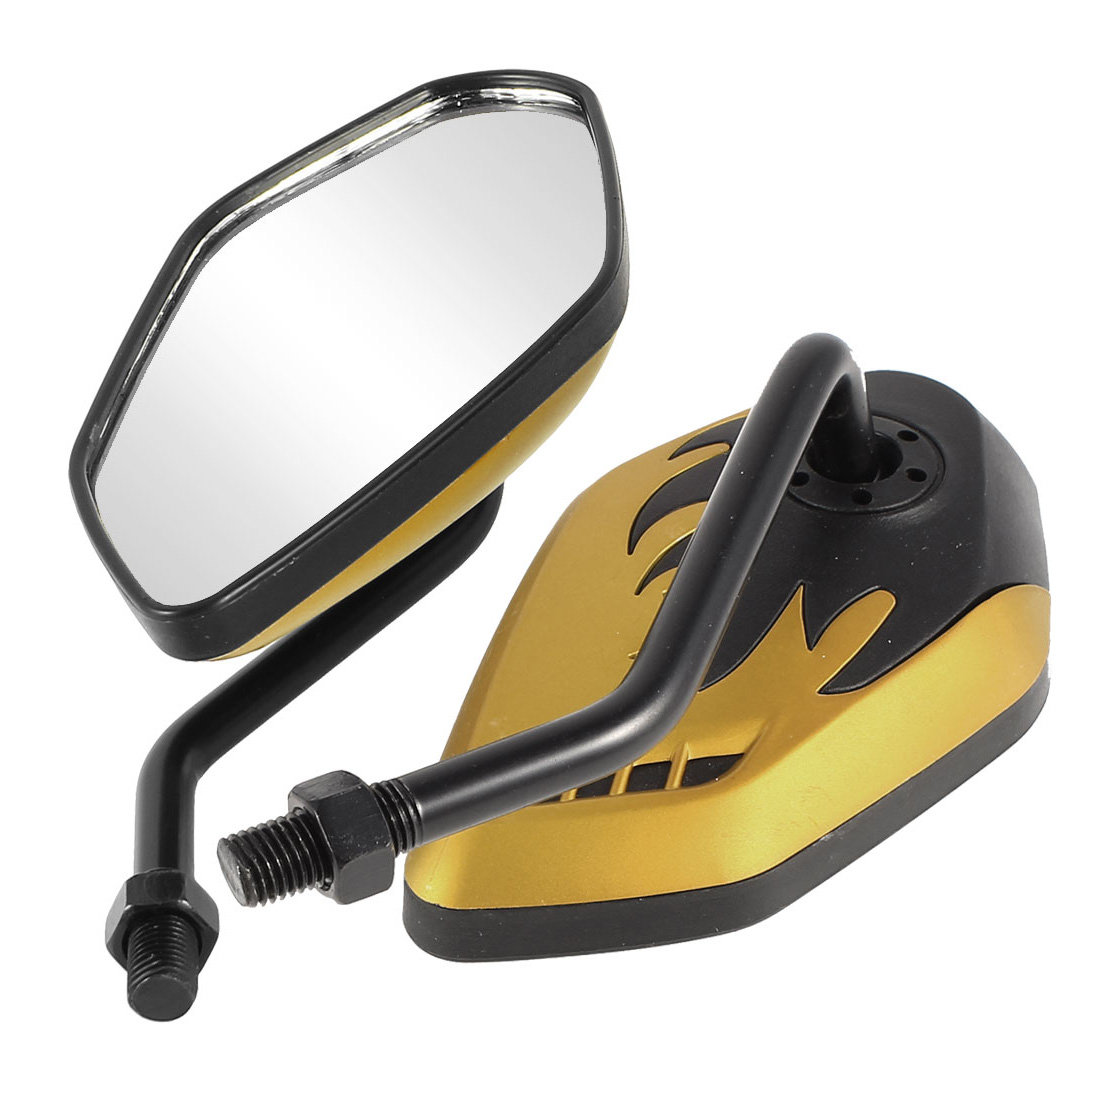 2 Pcs Black Gold Tone Fire Prints Motorbike 360 Degree Wide Angle Blind Spot Rearview Mirror